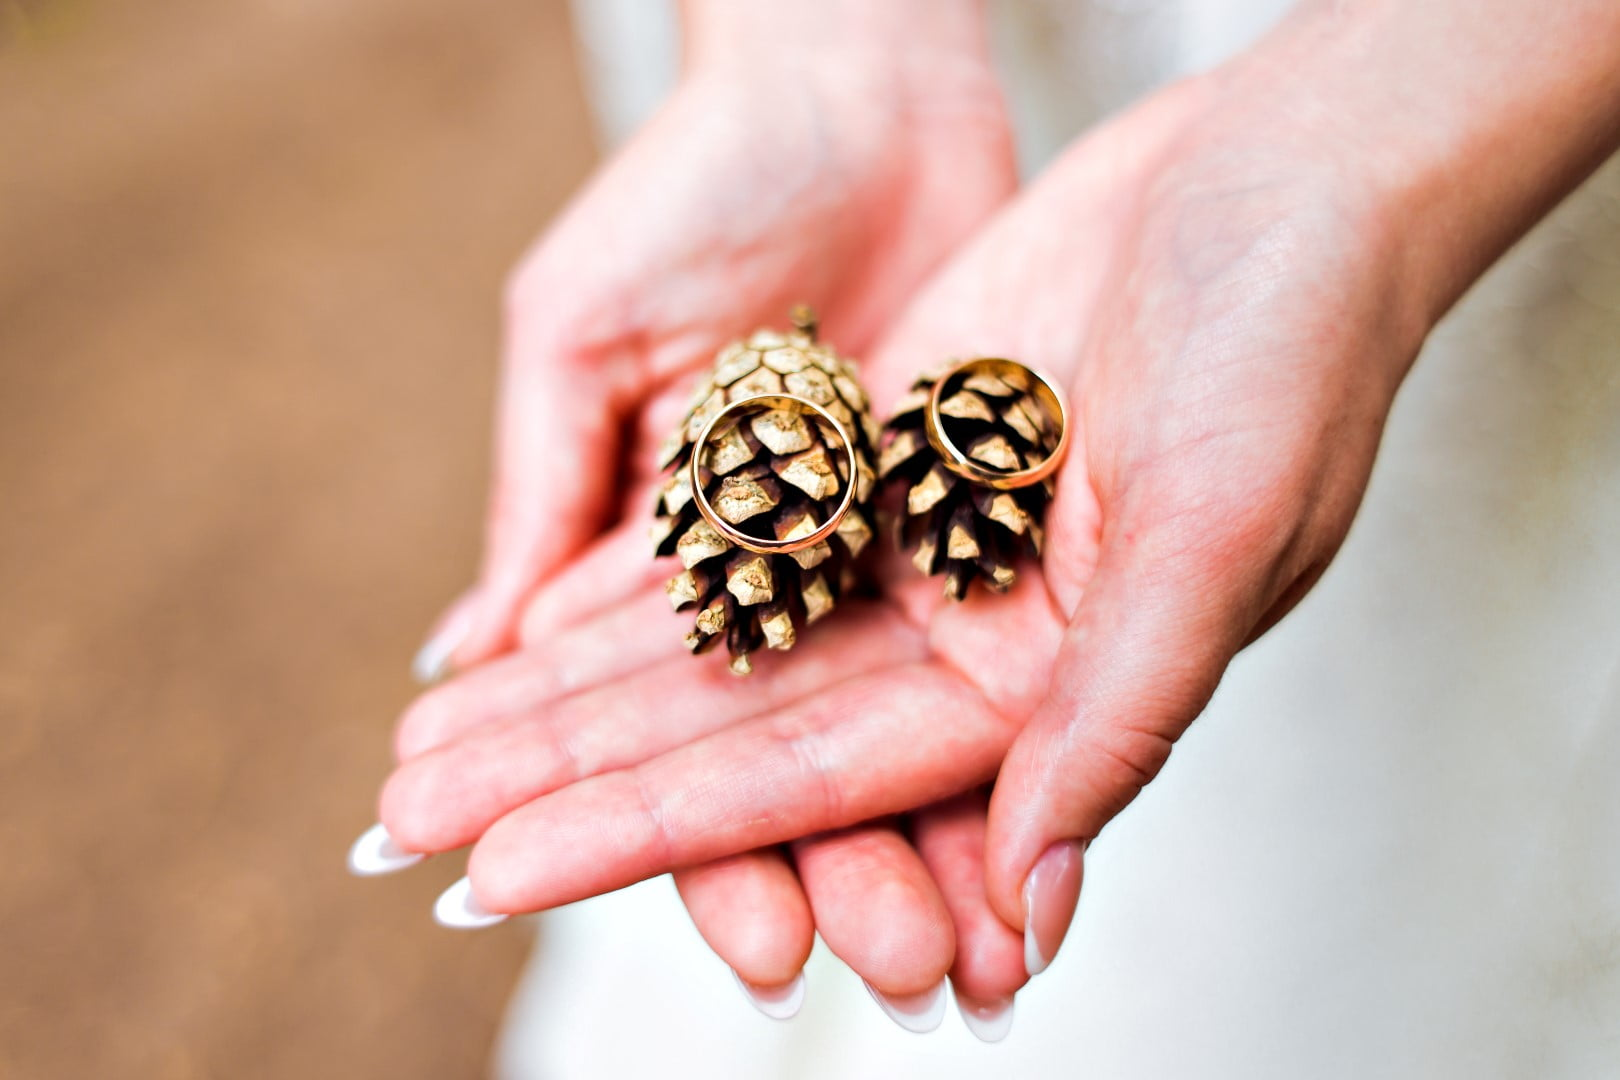 Take a picture of your wedding rings on pinecones